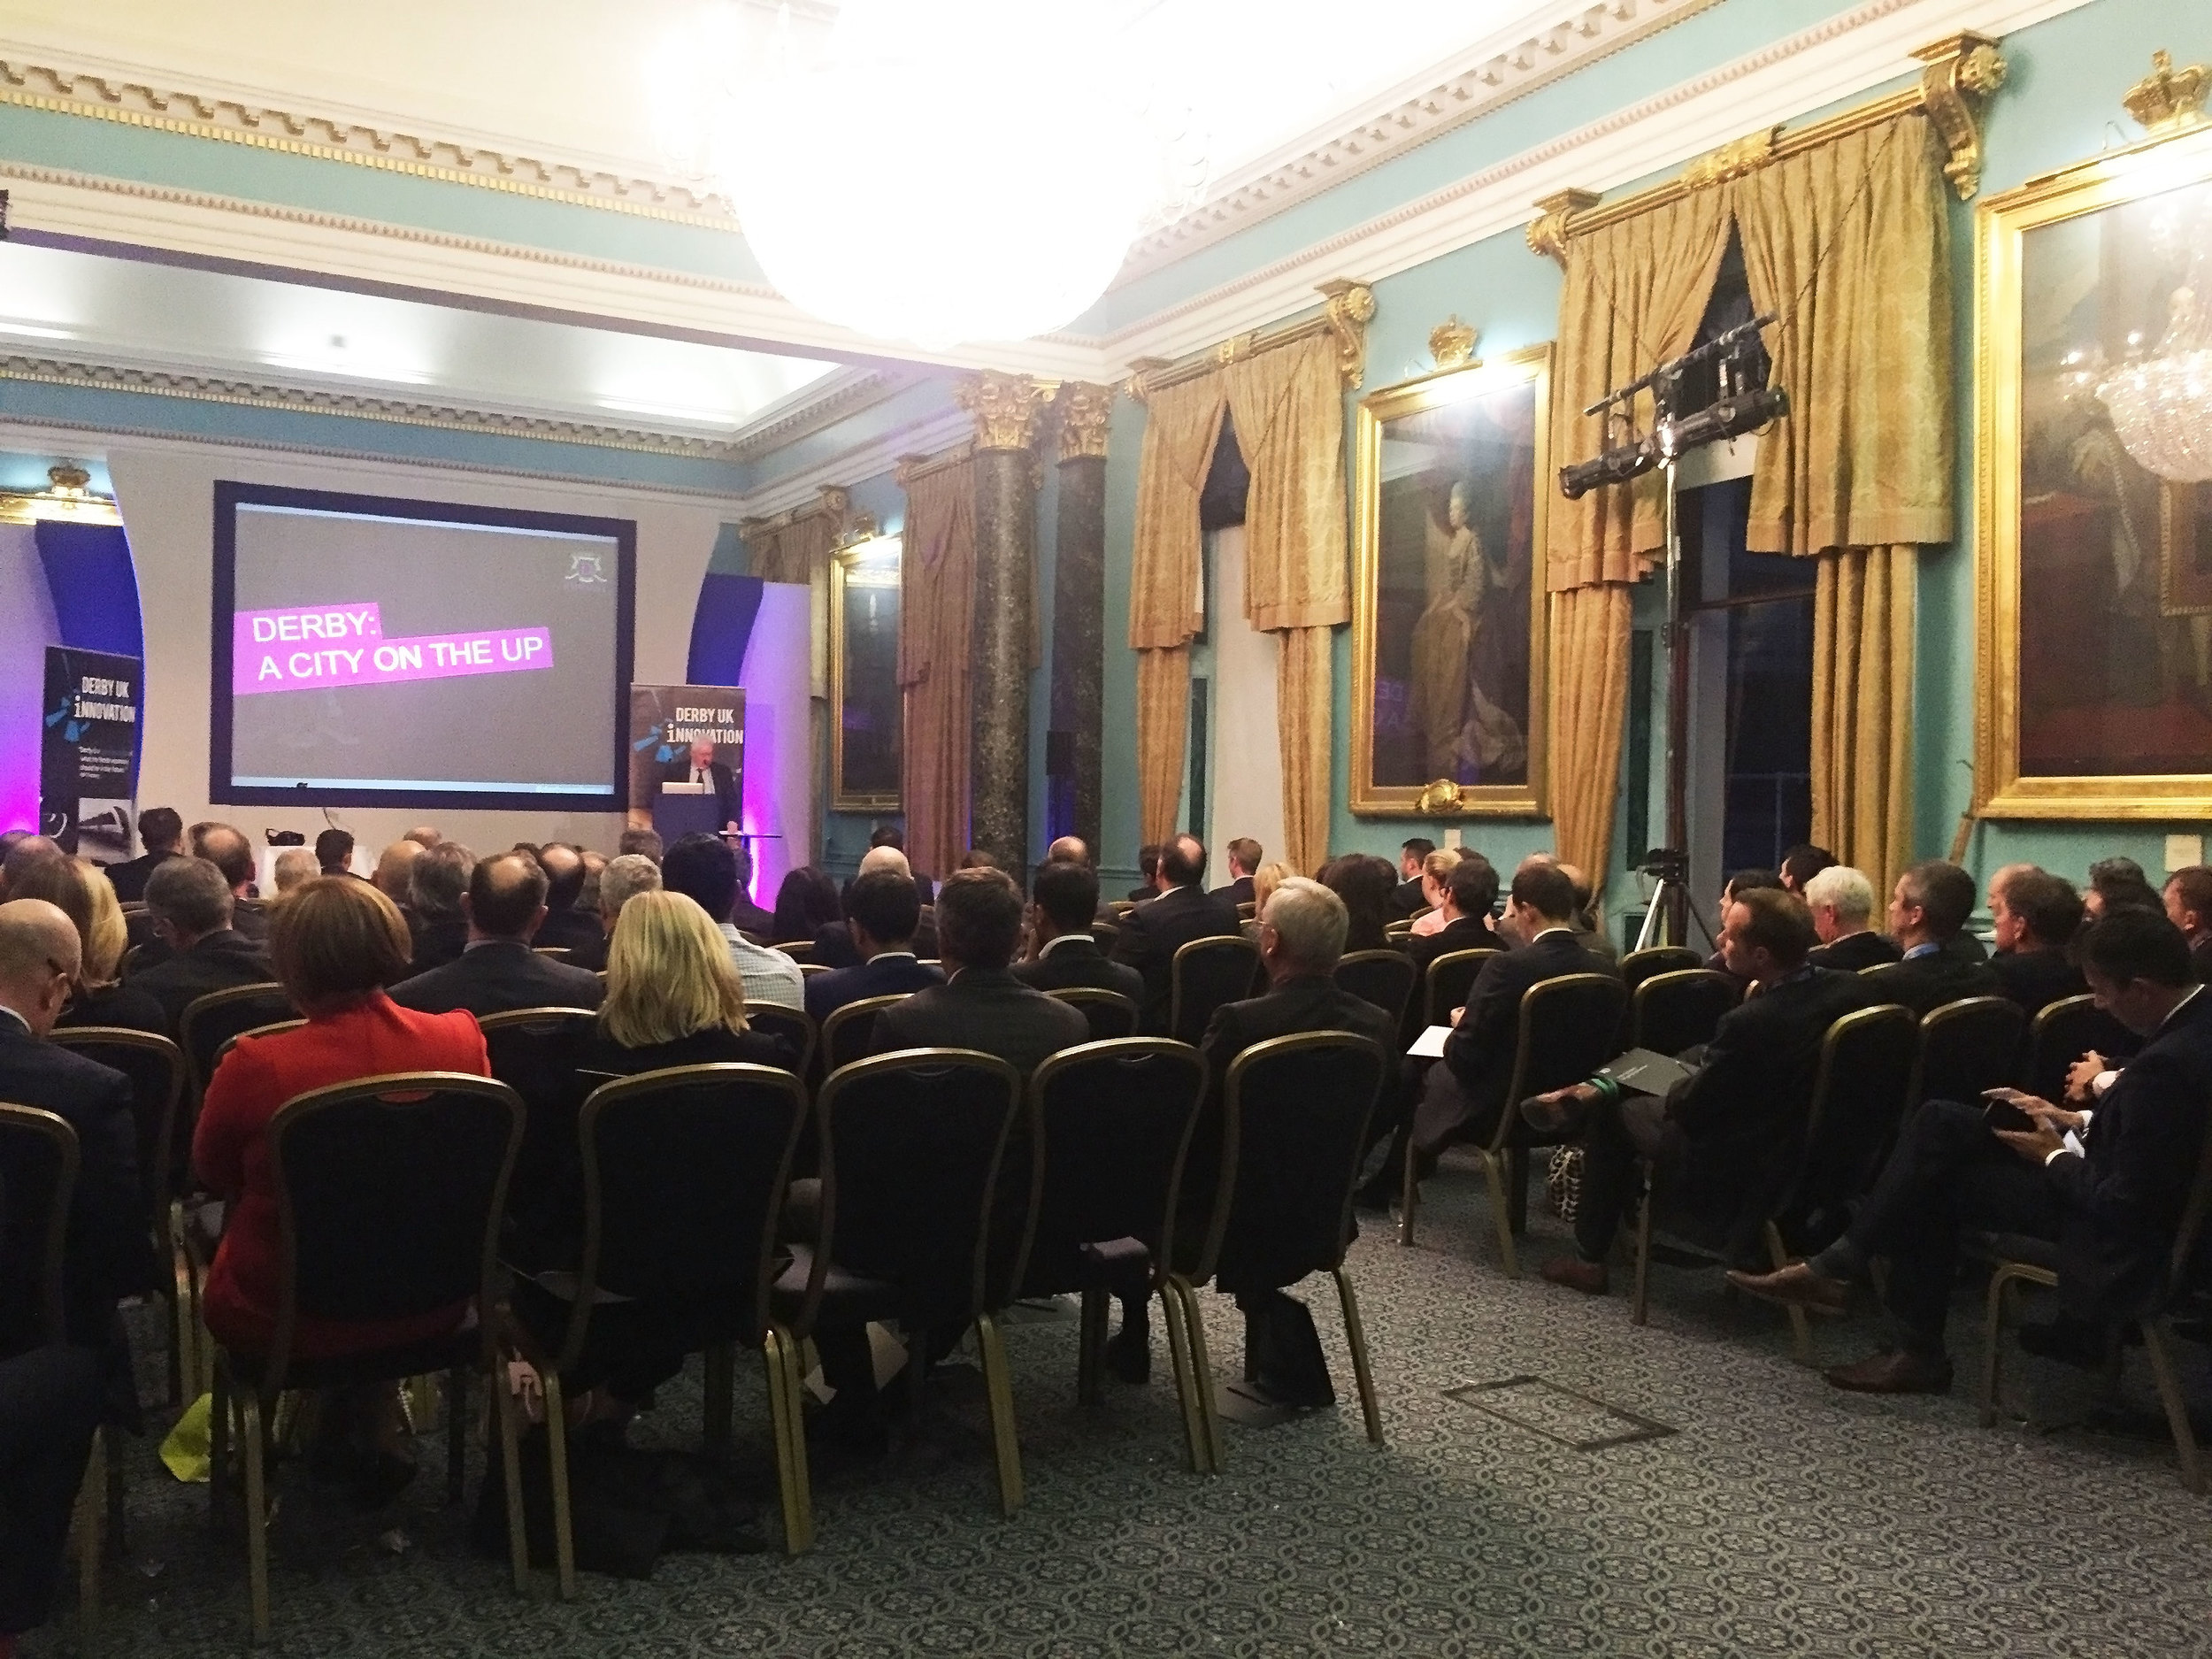 John Forkin introduces delegates to Derby and its three key selling points